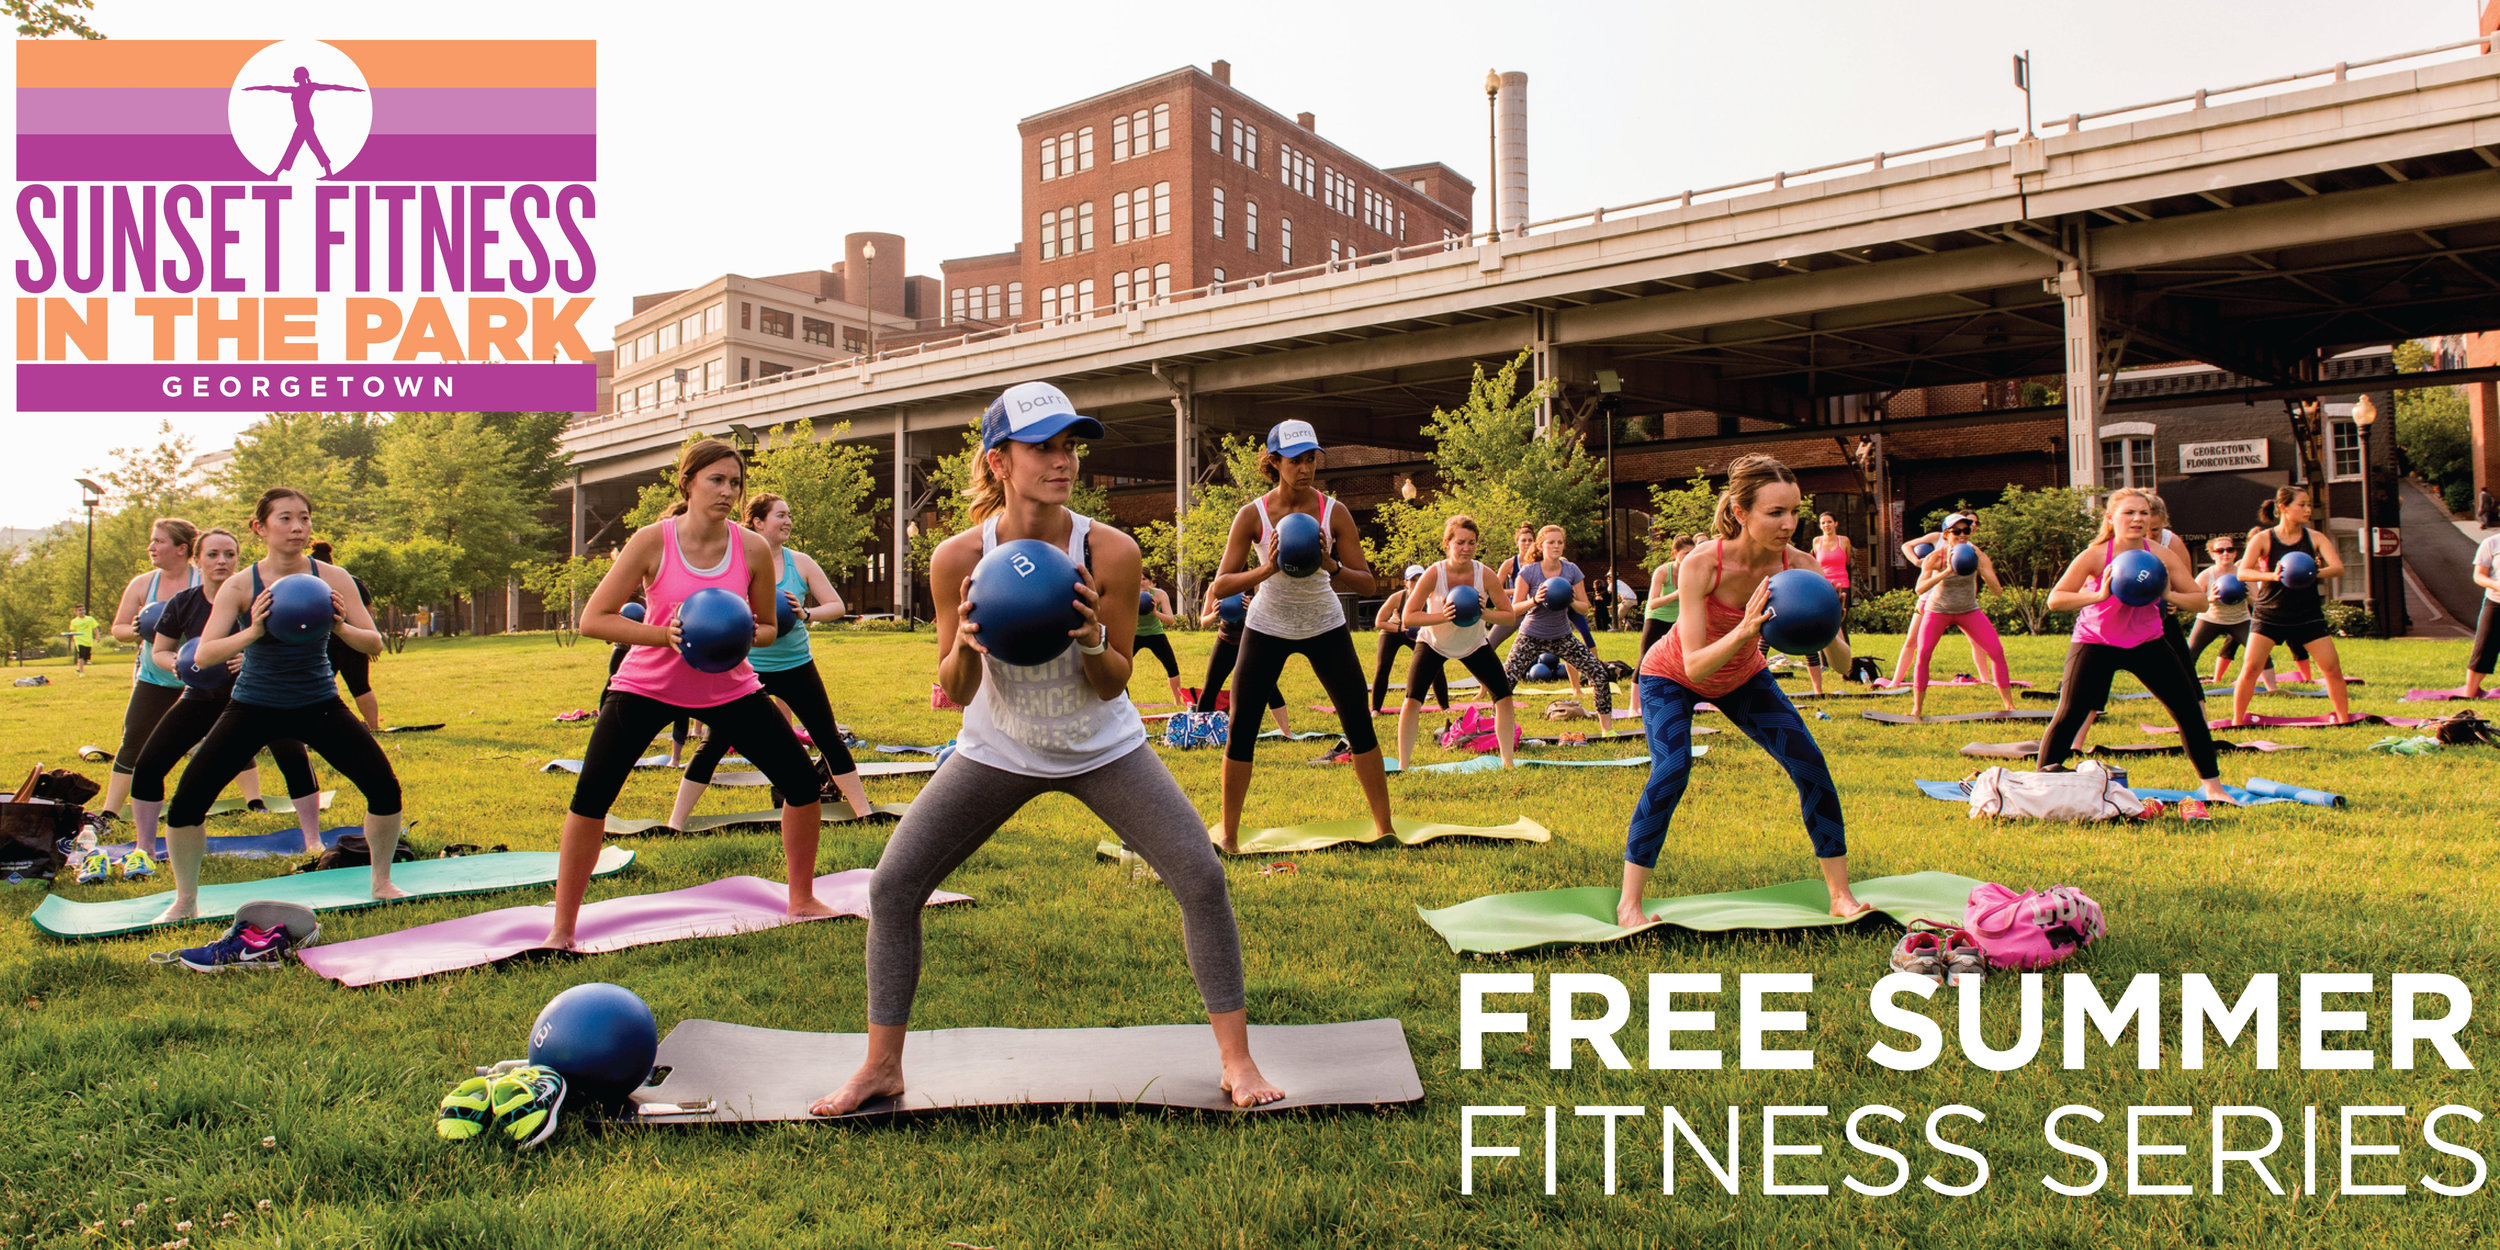 georgetown-free-summer-fitness.jpg